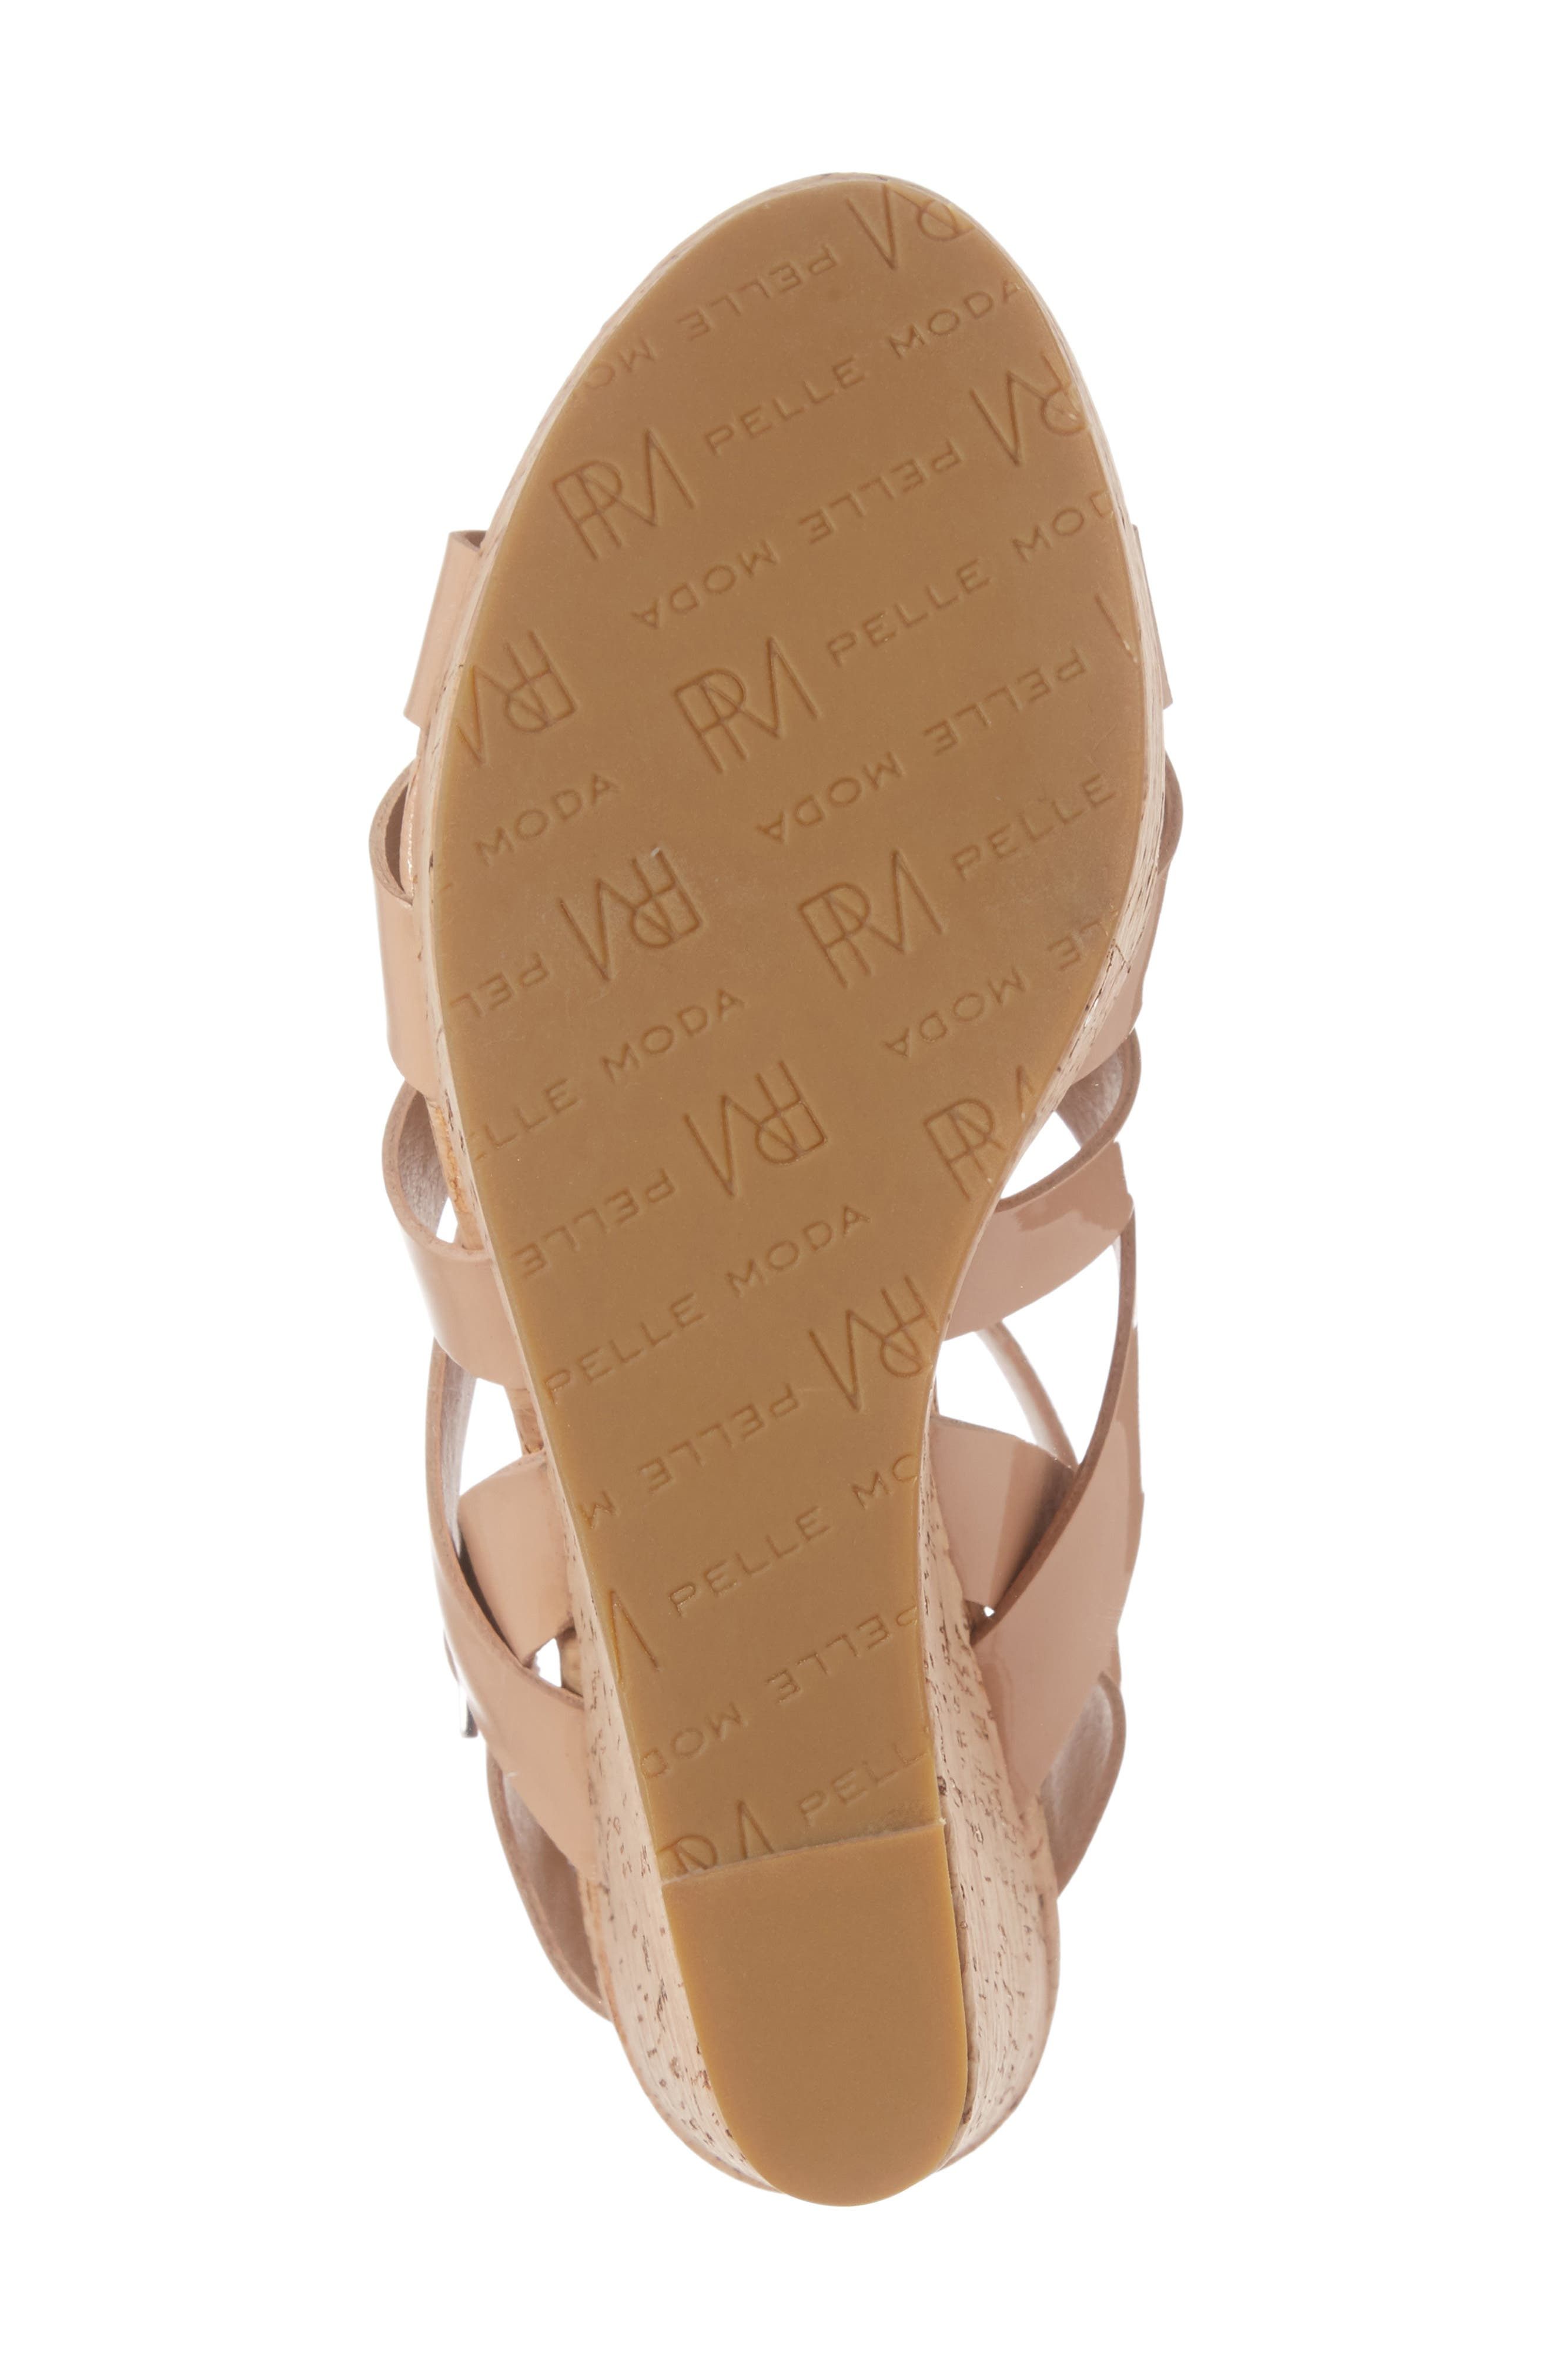 Rayjay Wedge Sandal,                             Alternate thumbnail 6, color,                             Blush Leather